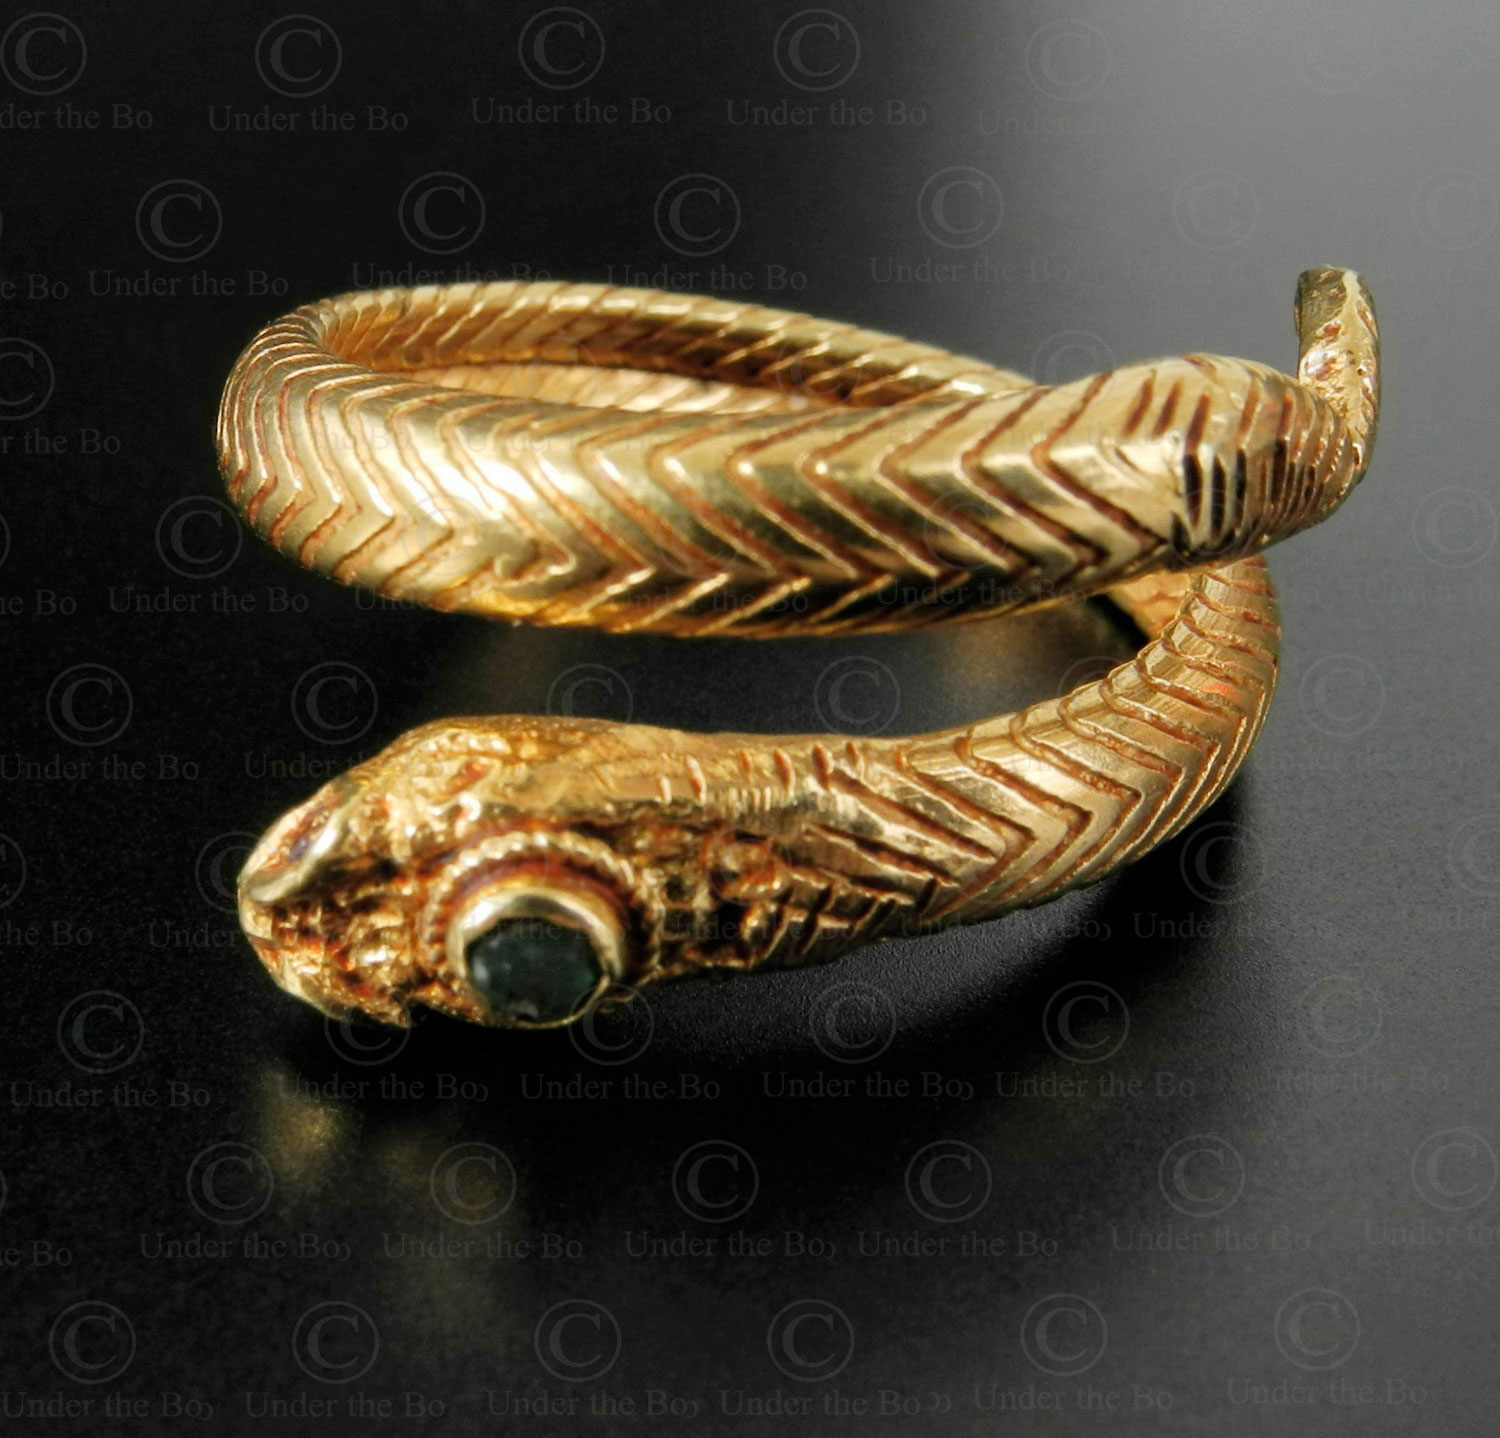 Bague serpent or R304. Artisanat contemporain du nord de l'Inde.